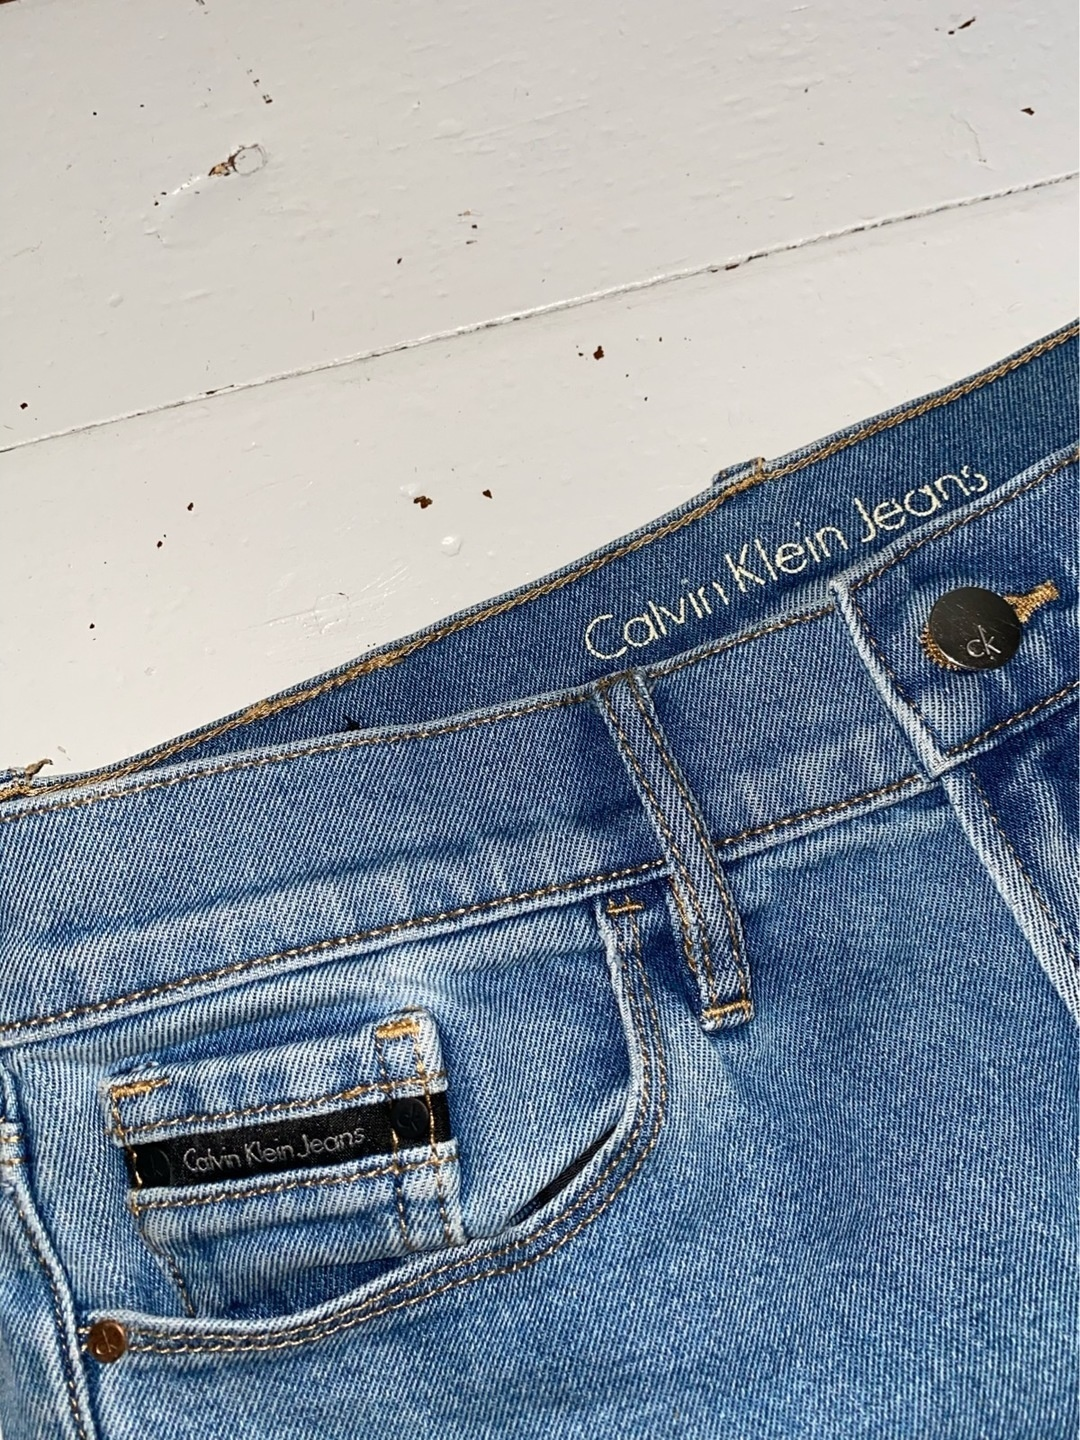 Women's trousers & jeans - CALVIN KLEIN photo 4